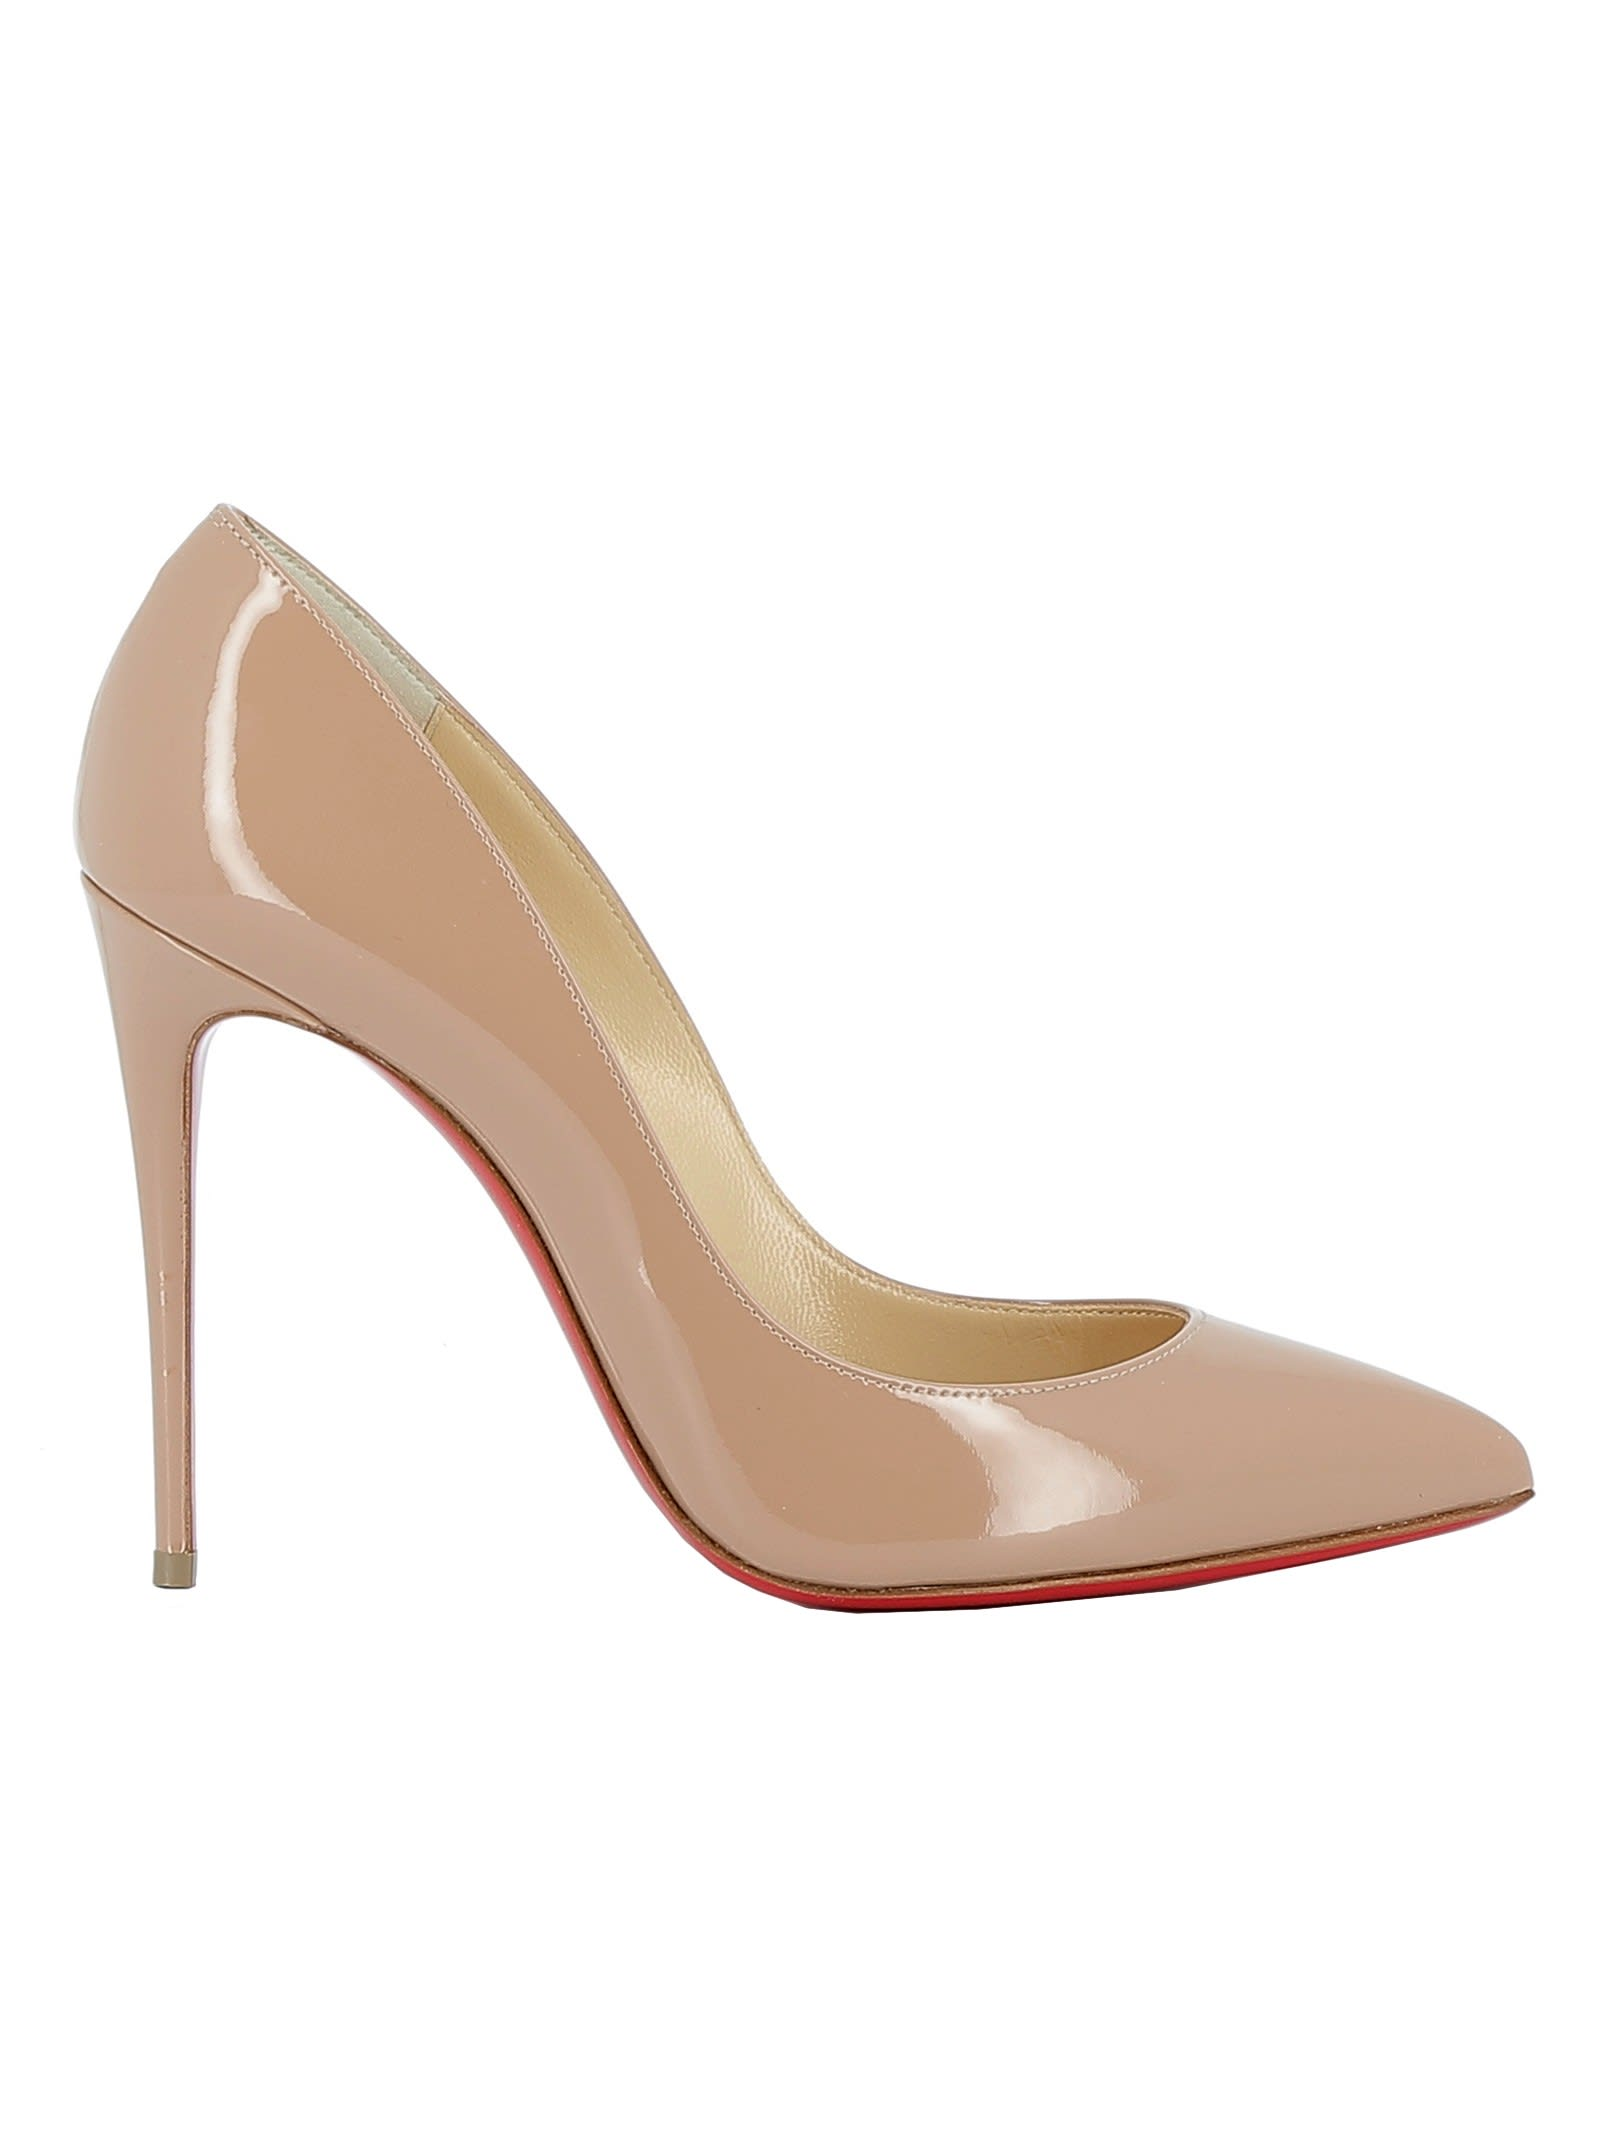 newest 9e846 615ce Best price on the market at italist | Christian Louboutin Christian  Louboutin Nude Patent Leather Pumps